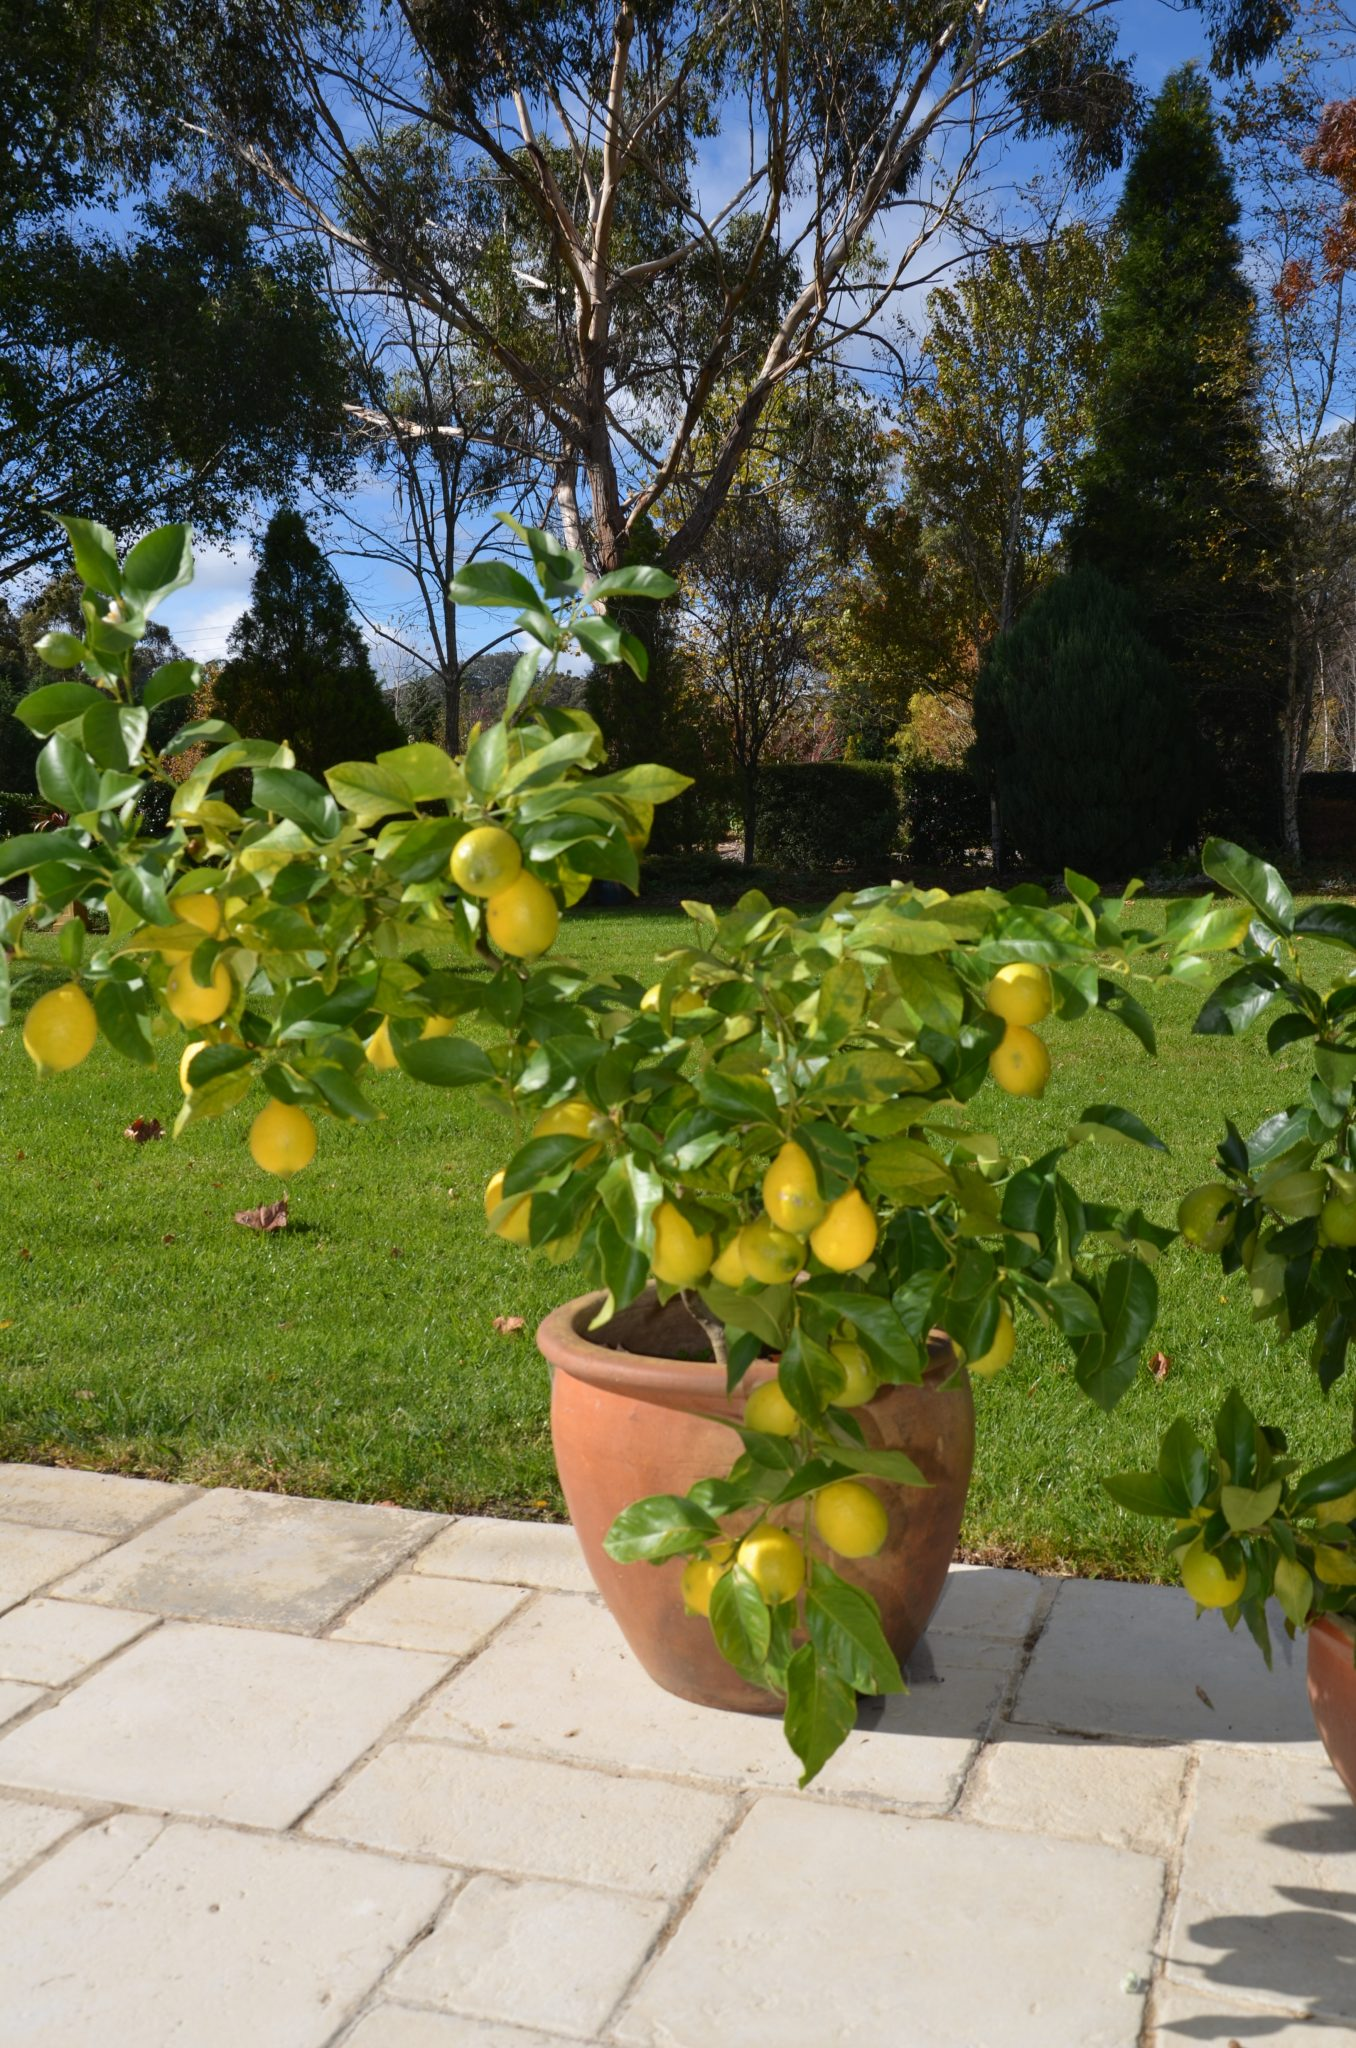 eureka lemon how to grow eureka lemon how to grow citrus in pots container gardening southern highlands new south wales